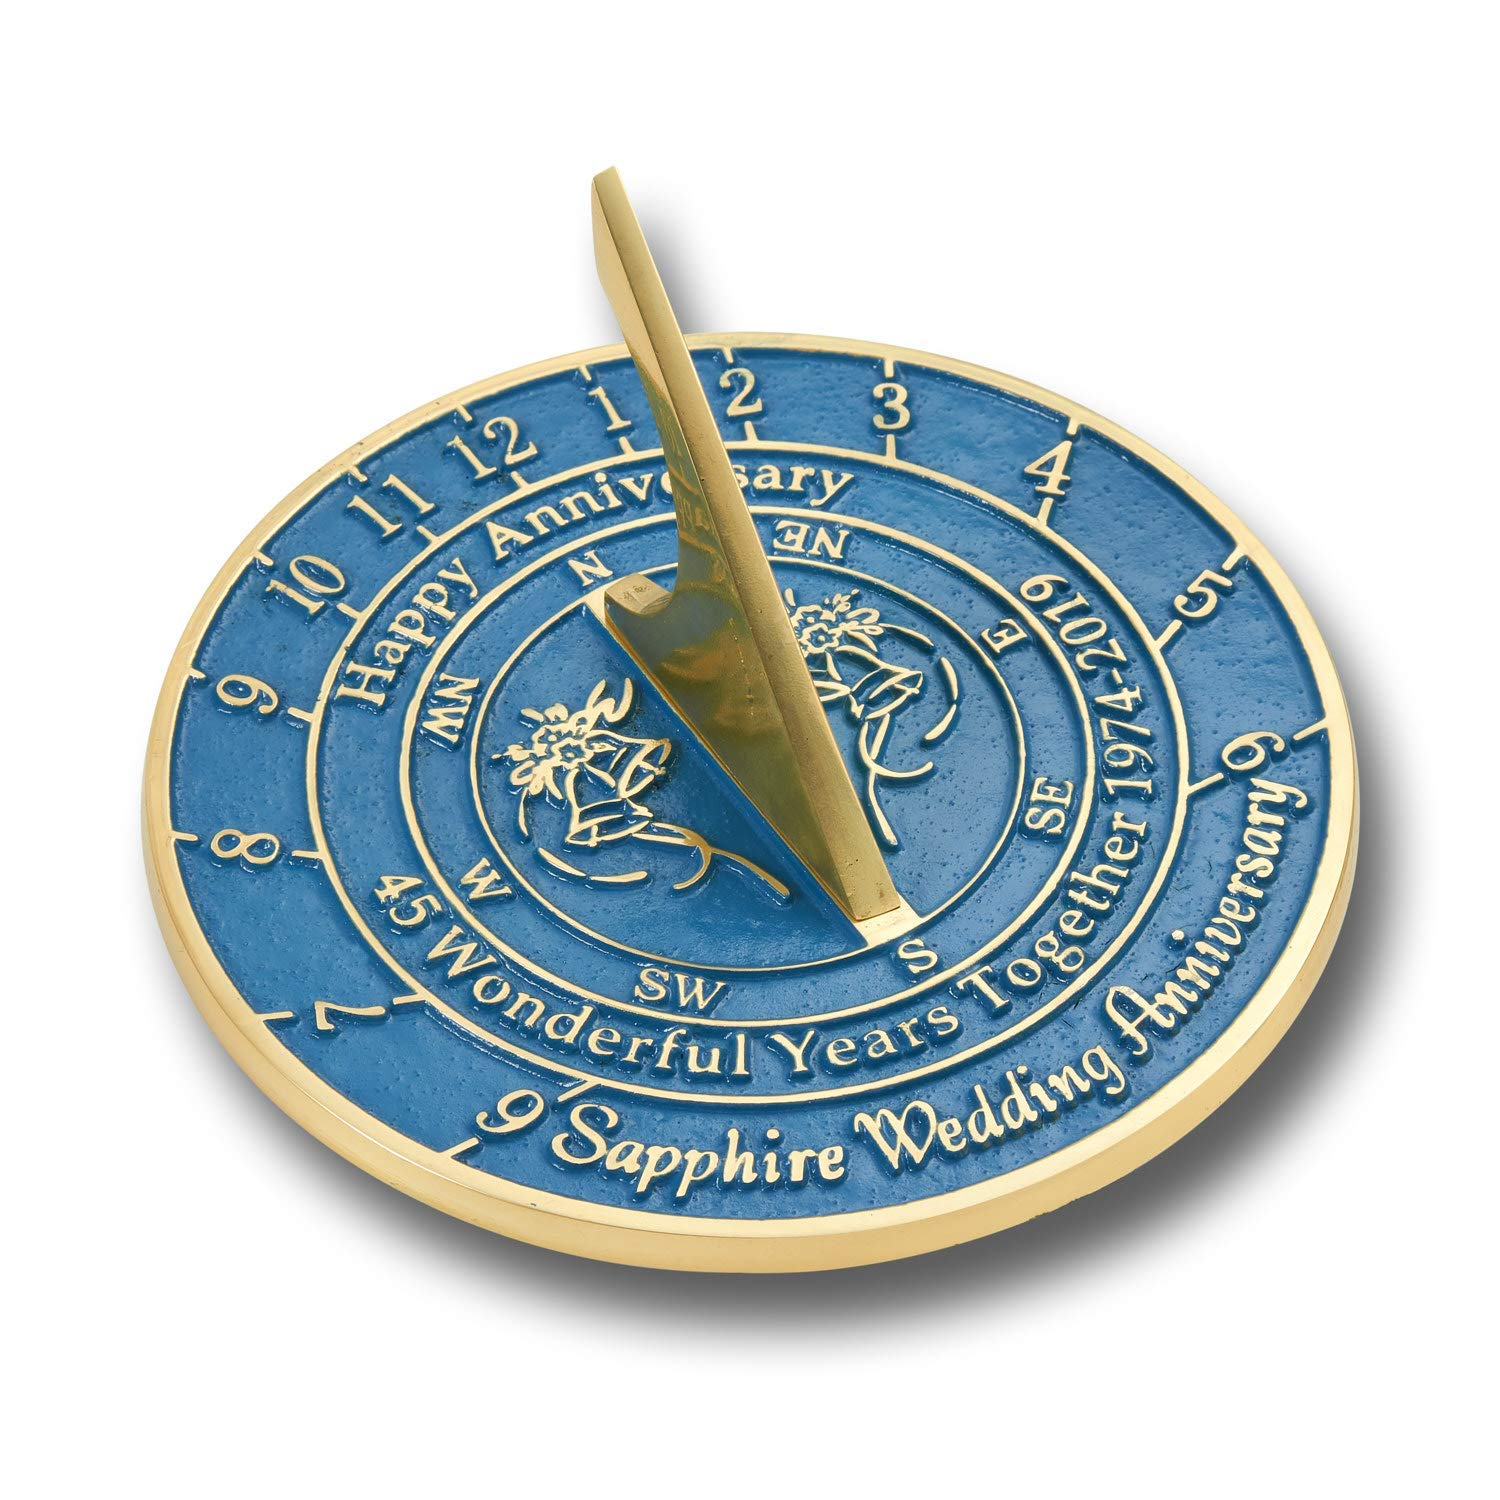 ANTIQUECOLLECTION 45th Sapphire Wedding Anniversary Sundial Gift